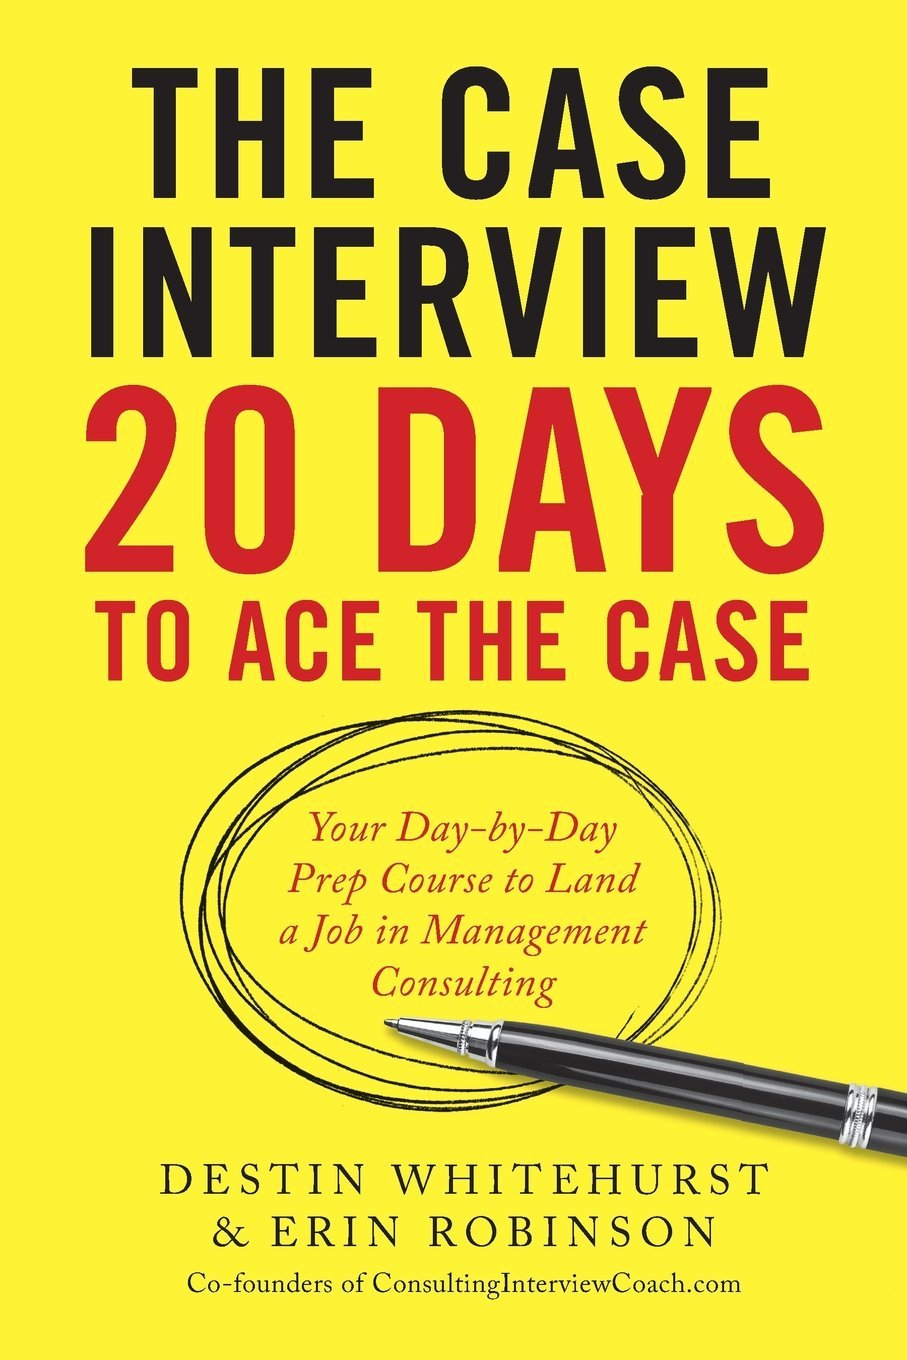 the case interview days to ace the case your day by day prep the case interview 20 days to ace the case your day by day prep course to land a job in management consulting destin whitehurst erin robinson